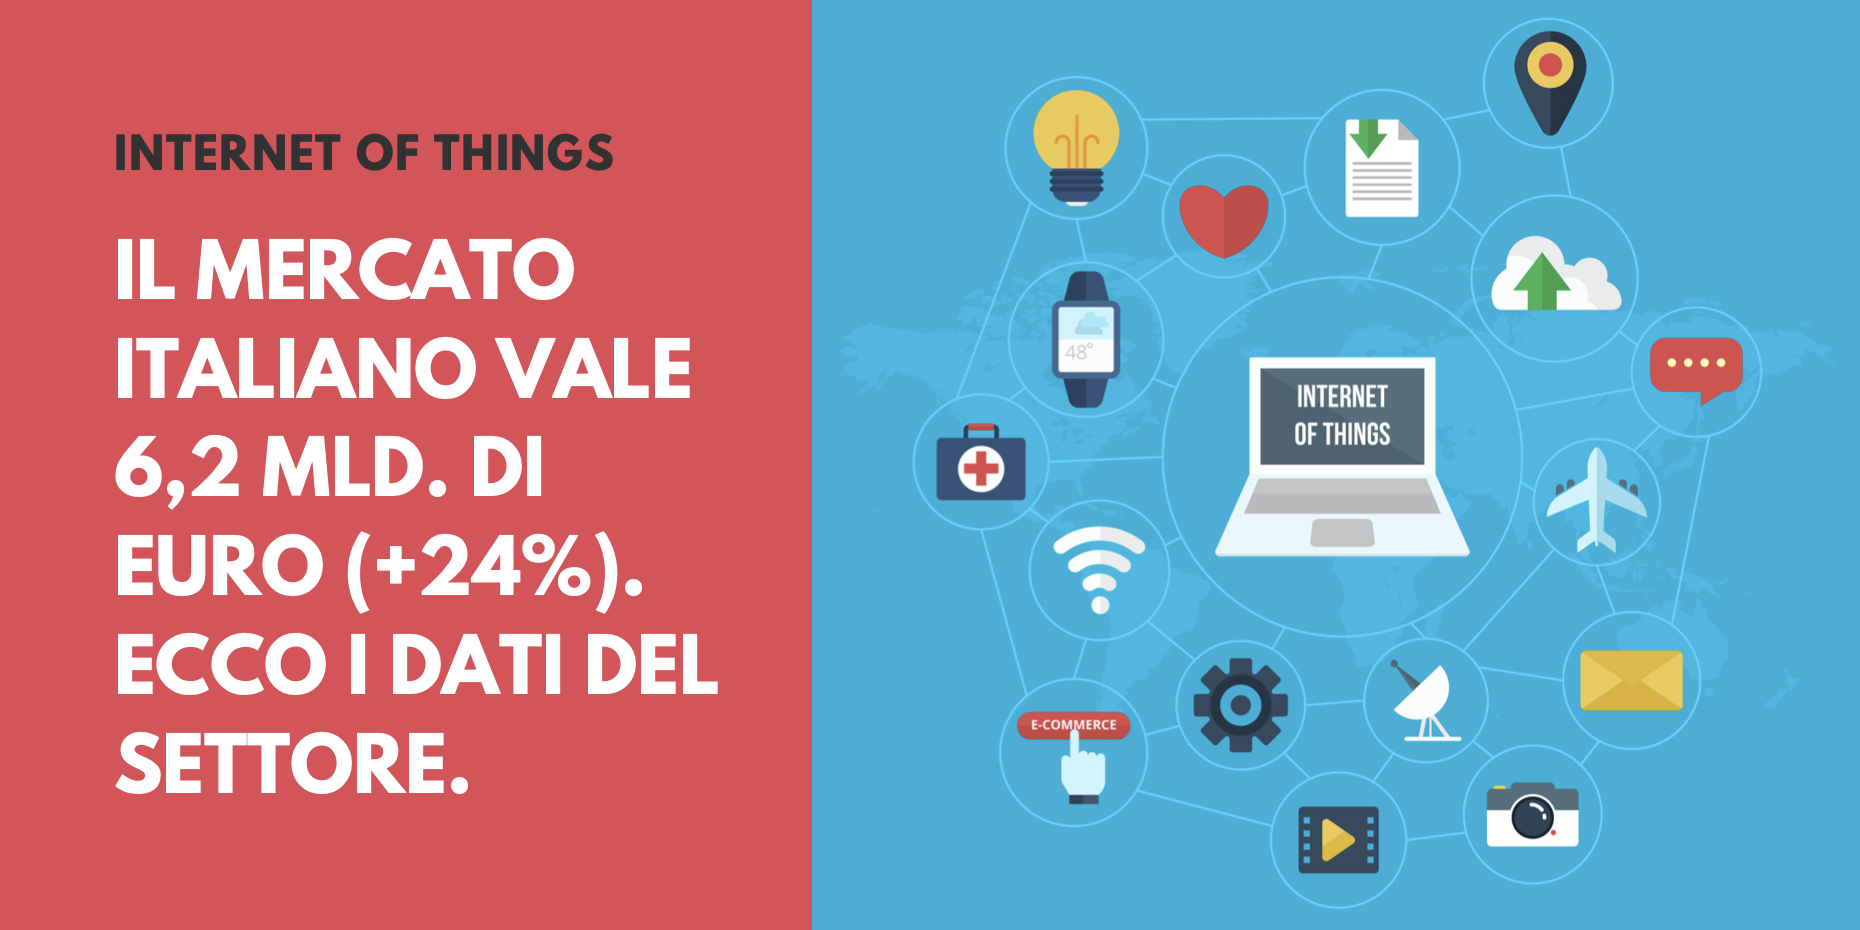 Internet of Things: il mercato italiano vale 6,2 mld. di Euro